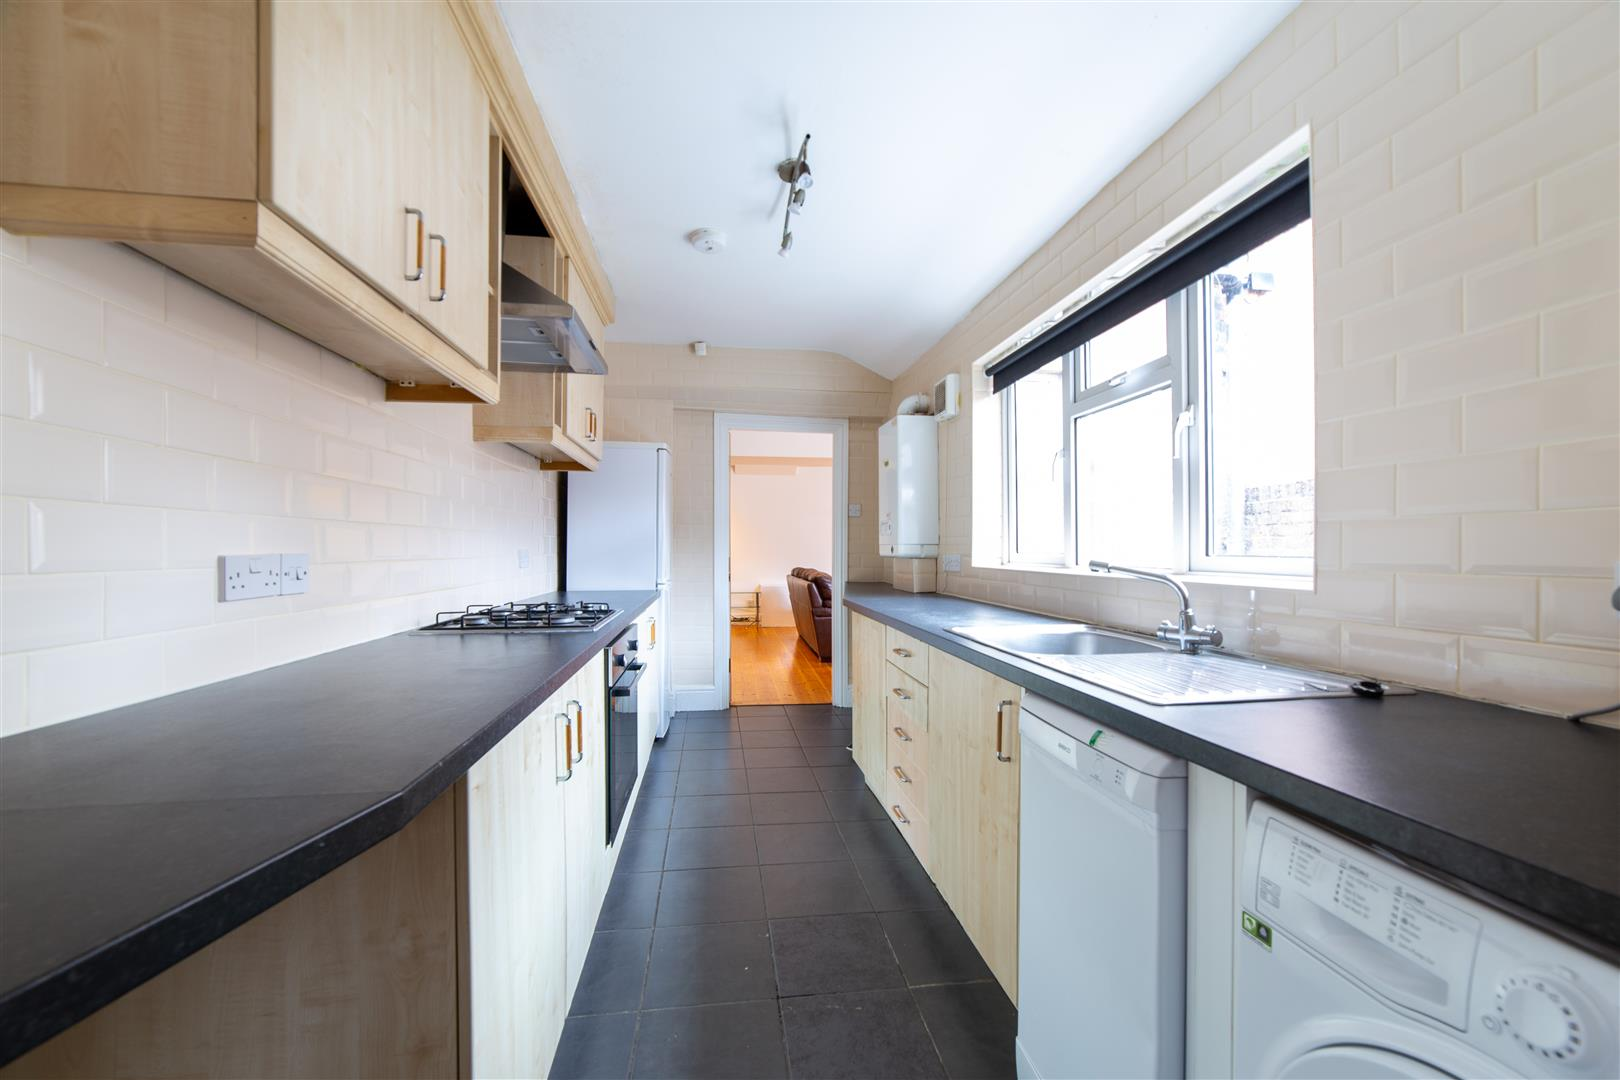 5 bed terraced house to rent in Newcastle Upon Tyne, NE6 5SN - Property Image 1